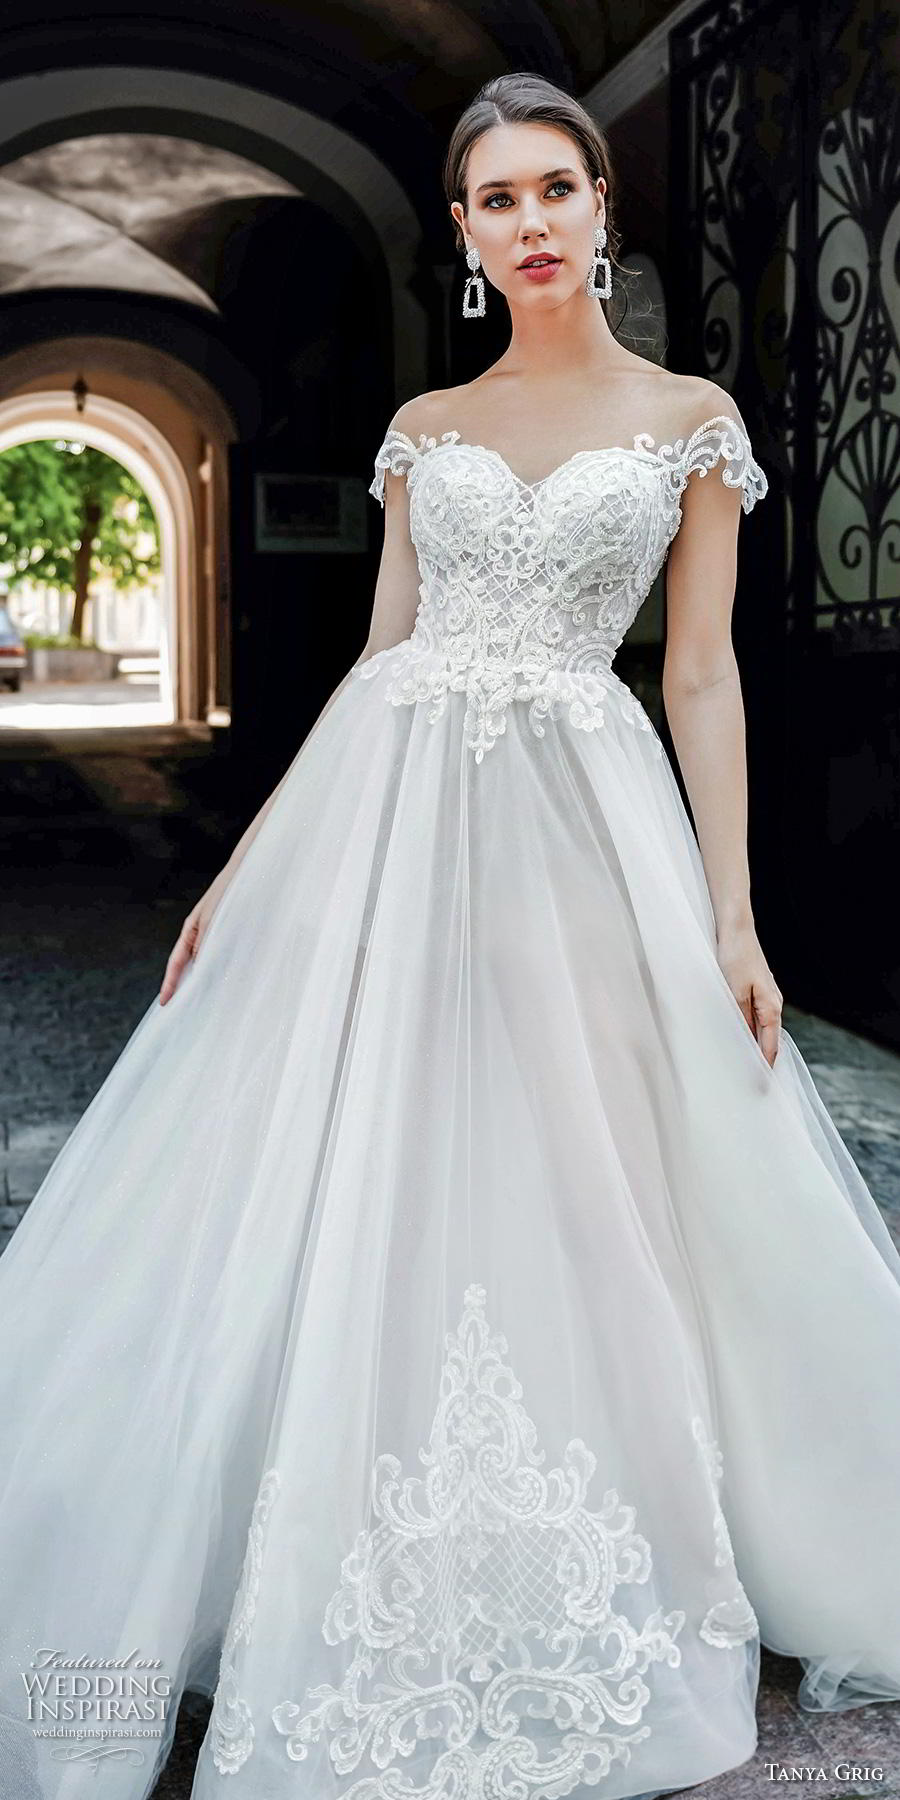 tanya grig 2020 bridal cap sleeves illlusion bateau sweetheart neckline heavily embellished bodice glamorous princess a  line wedding dress backless chapel train (16) lv